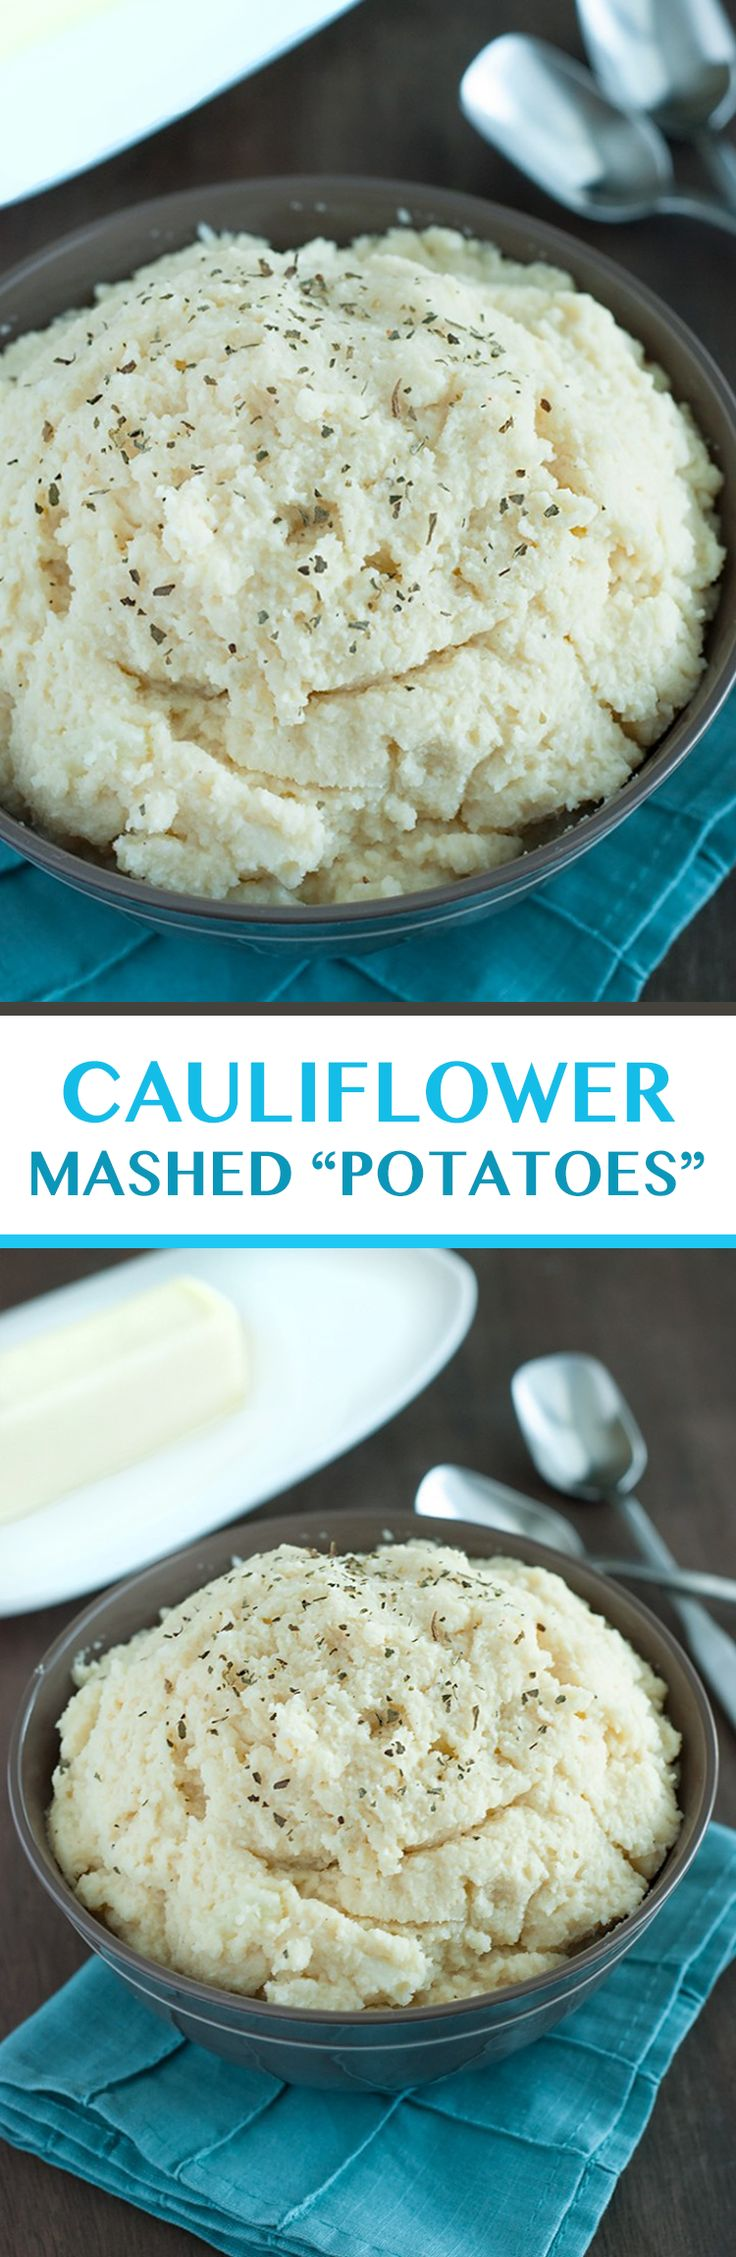 Cauliflower Mashed Potatoes - You'll wonder why you ever ate regular mashed potatoes!